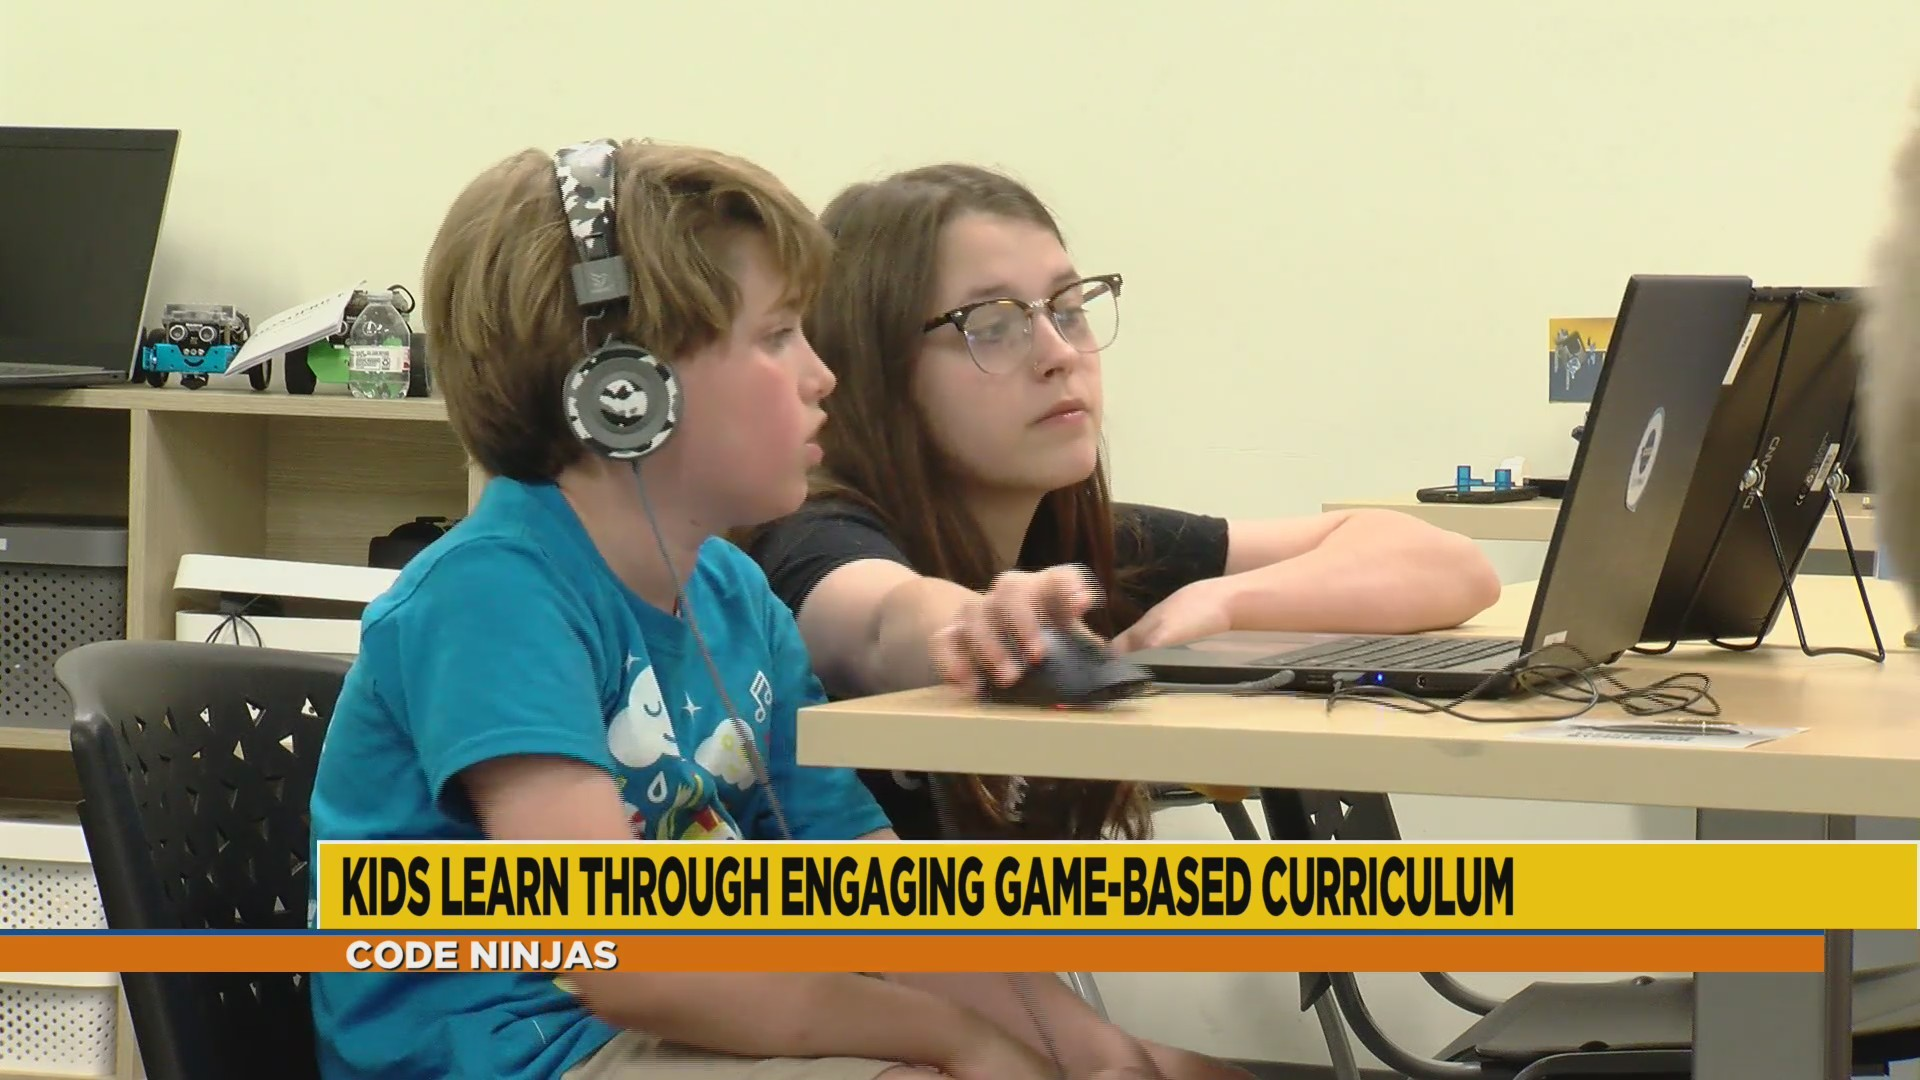 Kids design and build their own apps at Code Ninjas